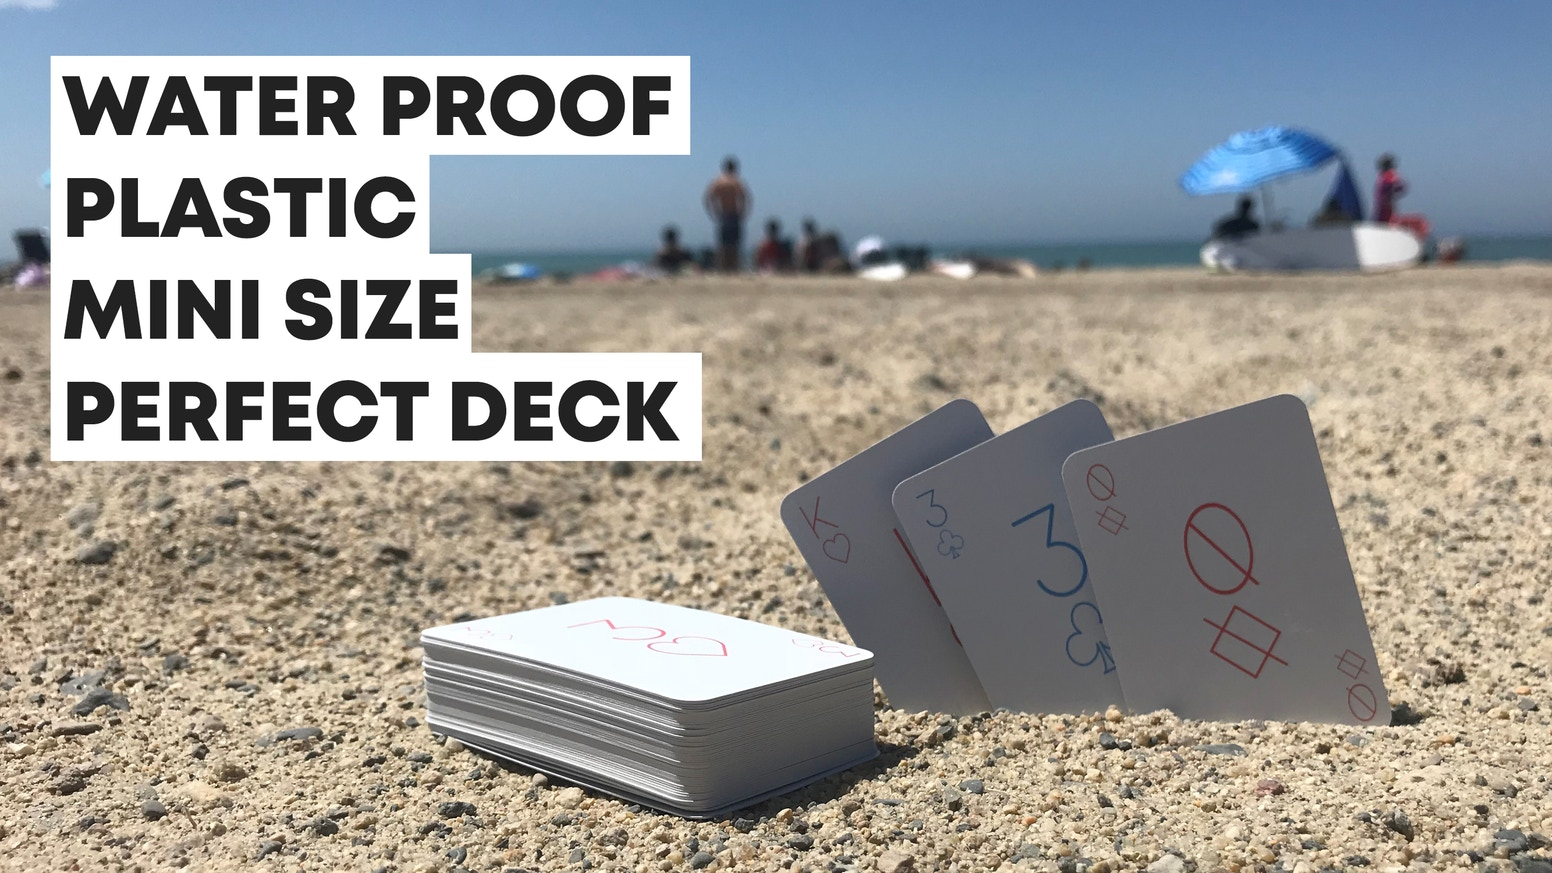 tny2 - a perfect travel deck